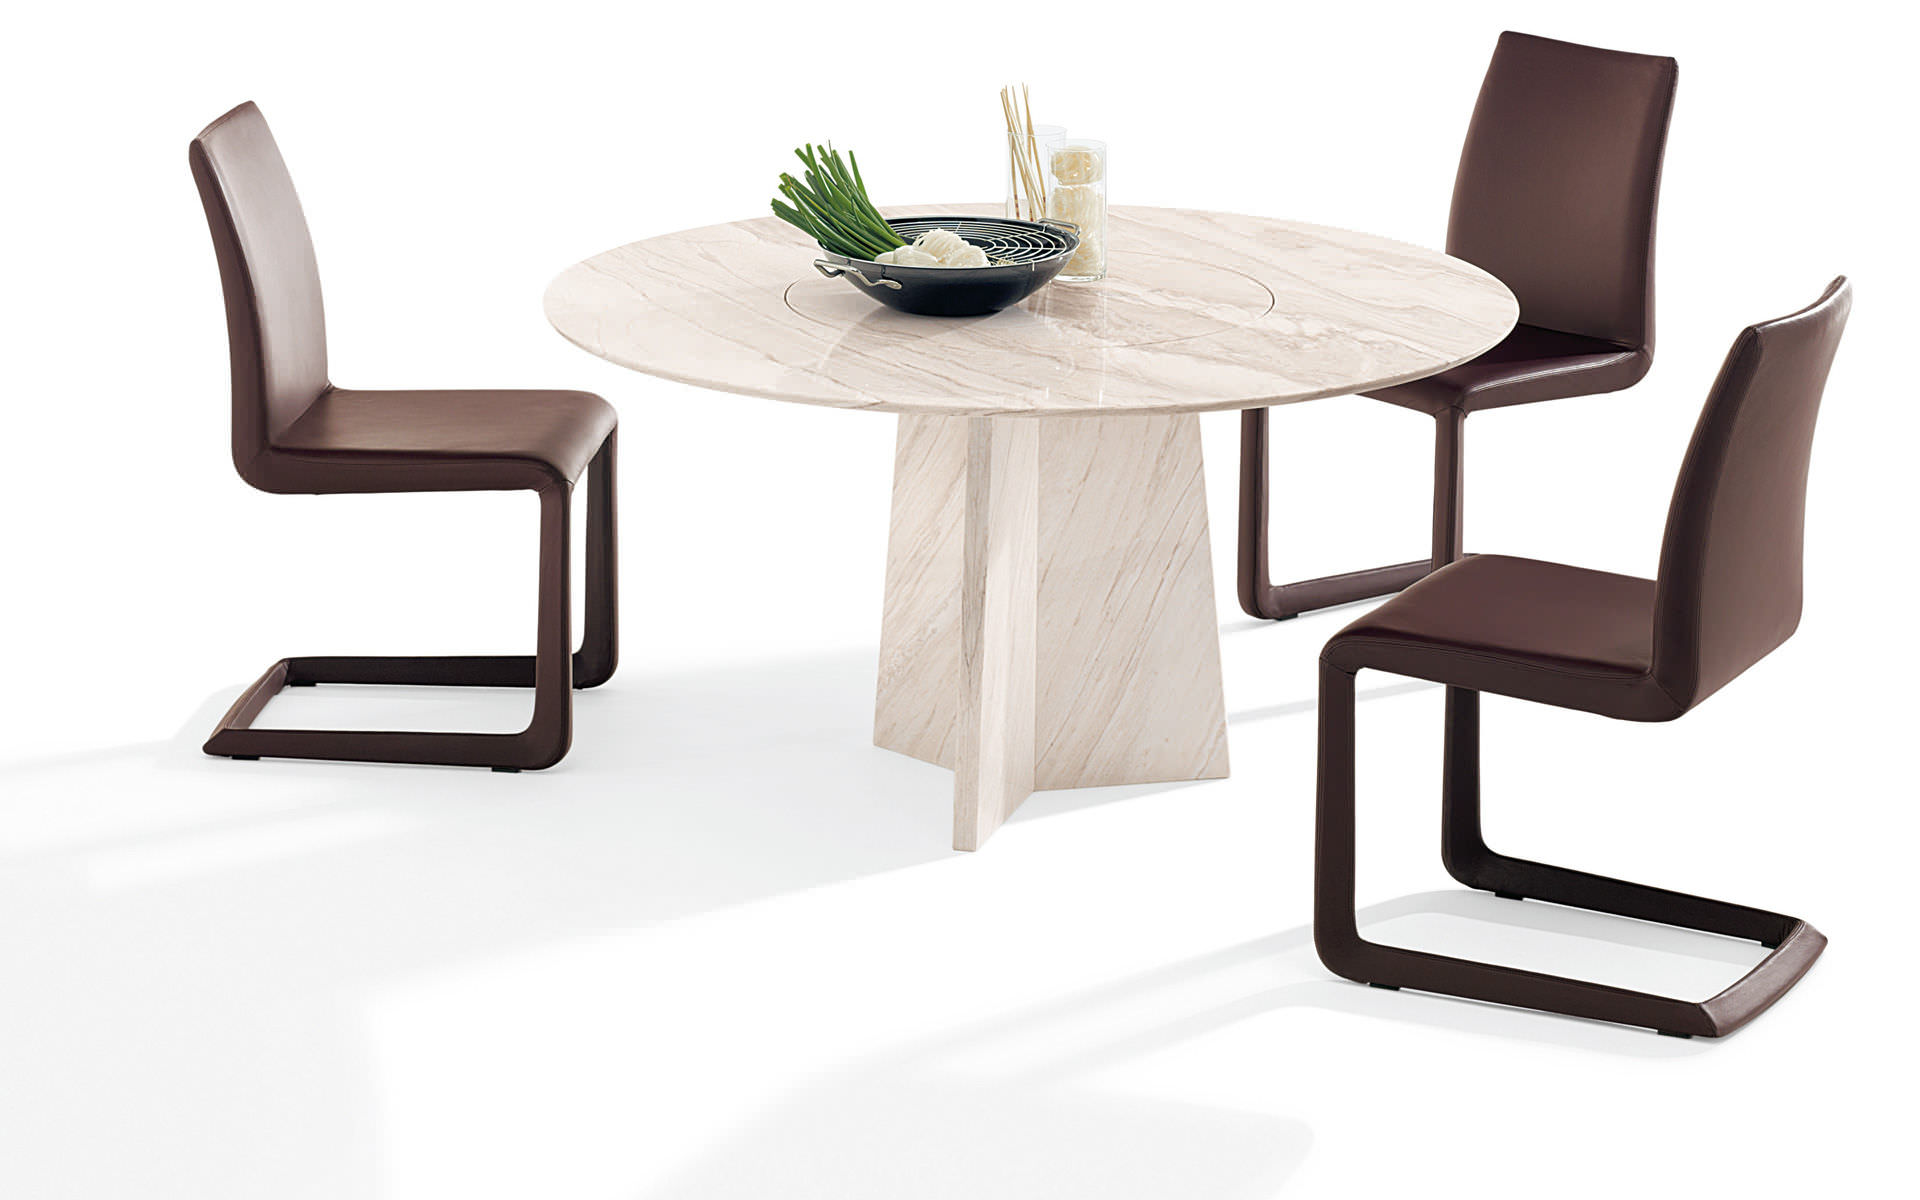 Contemporary Dining Table 1515 Tadao Draenert Glass Natural Stone Round